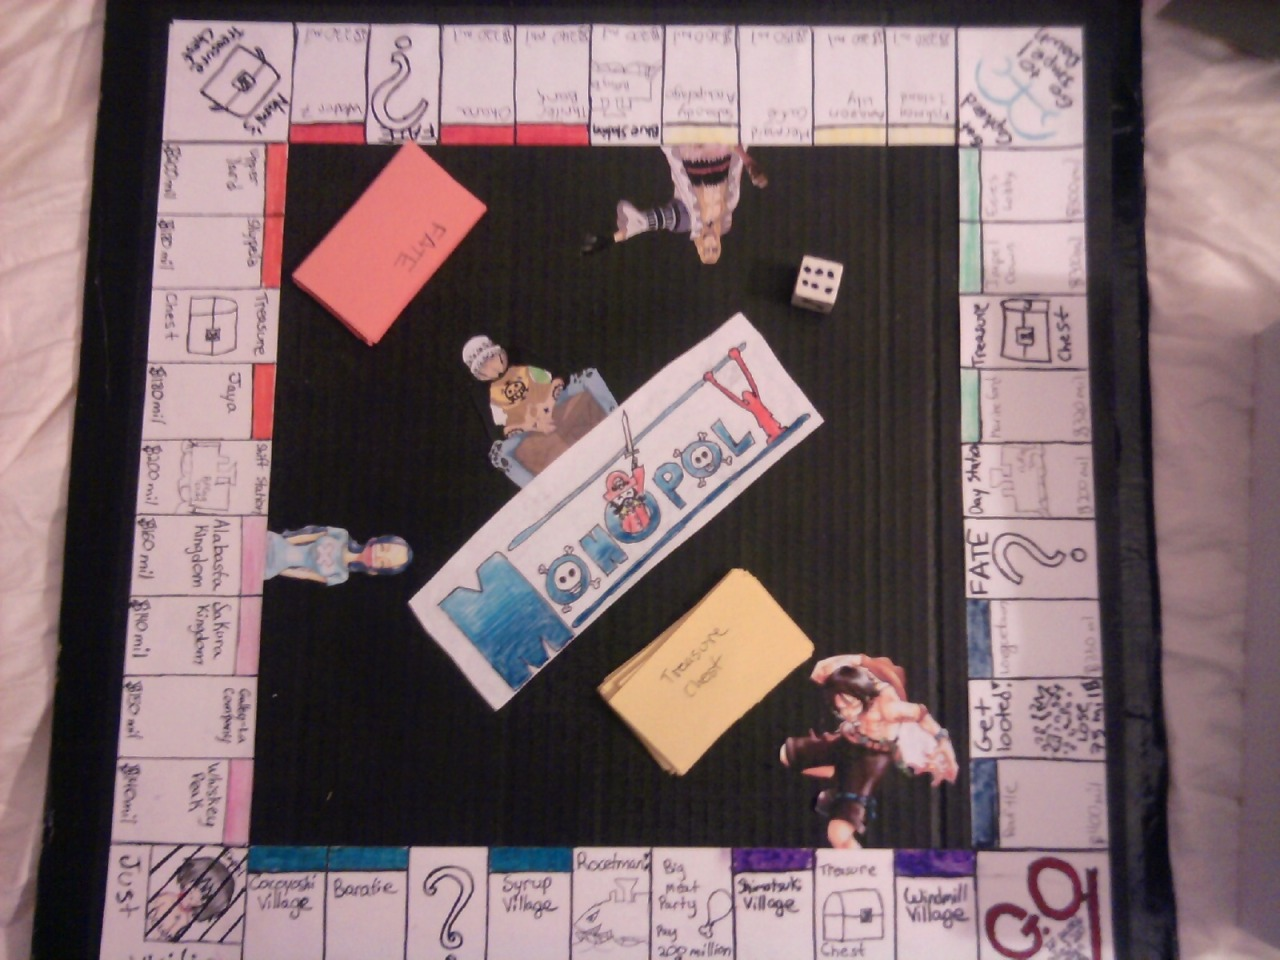 thatmartiangirl:  I made a One Piece Monopoly game a while back for my sister for Christmas. It heavily featured her favorite characters (Ace, Ace, some other characters, and more Ace) Here are some pictures of it :) Just so you know, the other strawhats were on the sides of the box. I would show them, but Tumblr only lets me post a certain number of pictures at a time By the way, my sister got a Tumblr. If you would like to check it out, here's the link: http://therealacefangirl.tumblr.com/ Did I mention she really like Ace?  lauraluffy: this is aweeeeesoommeeeeeee! :)